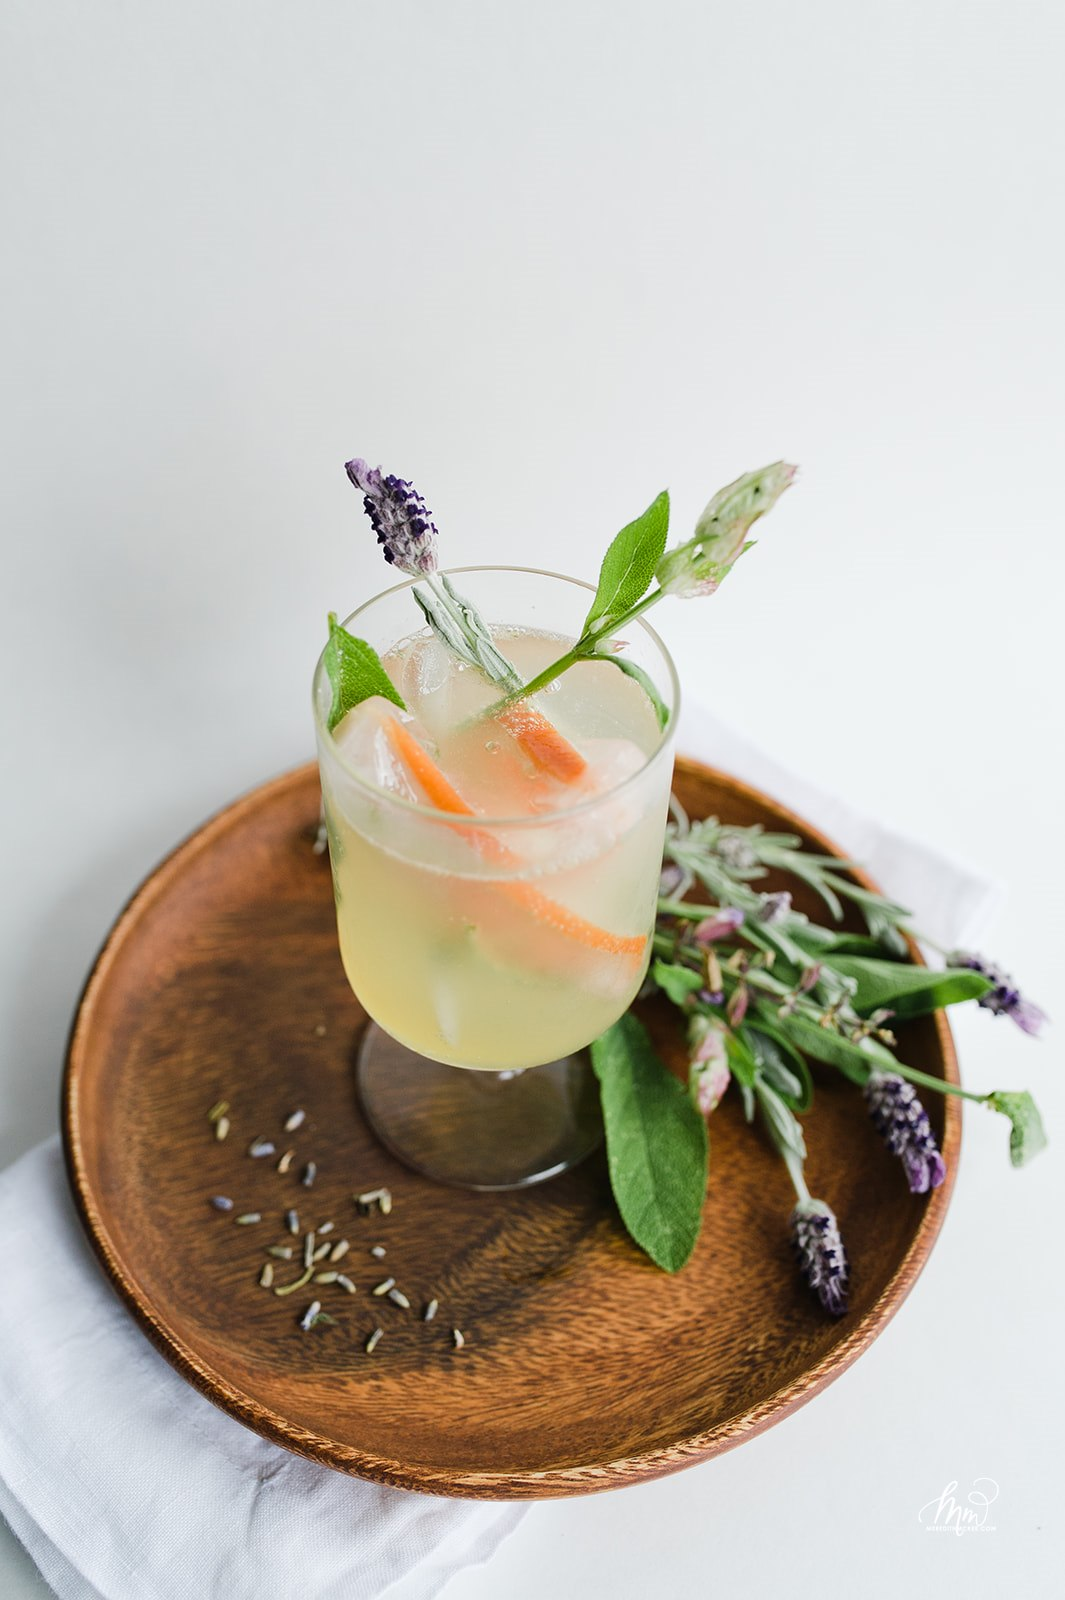 Cocktail Recipe of the Week: the Seattle Sling, and also introducing our first Spring Launch flavor, Lemon Herb!